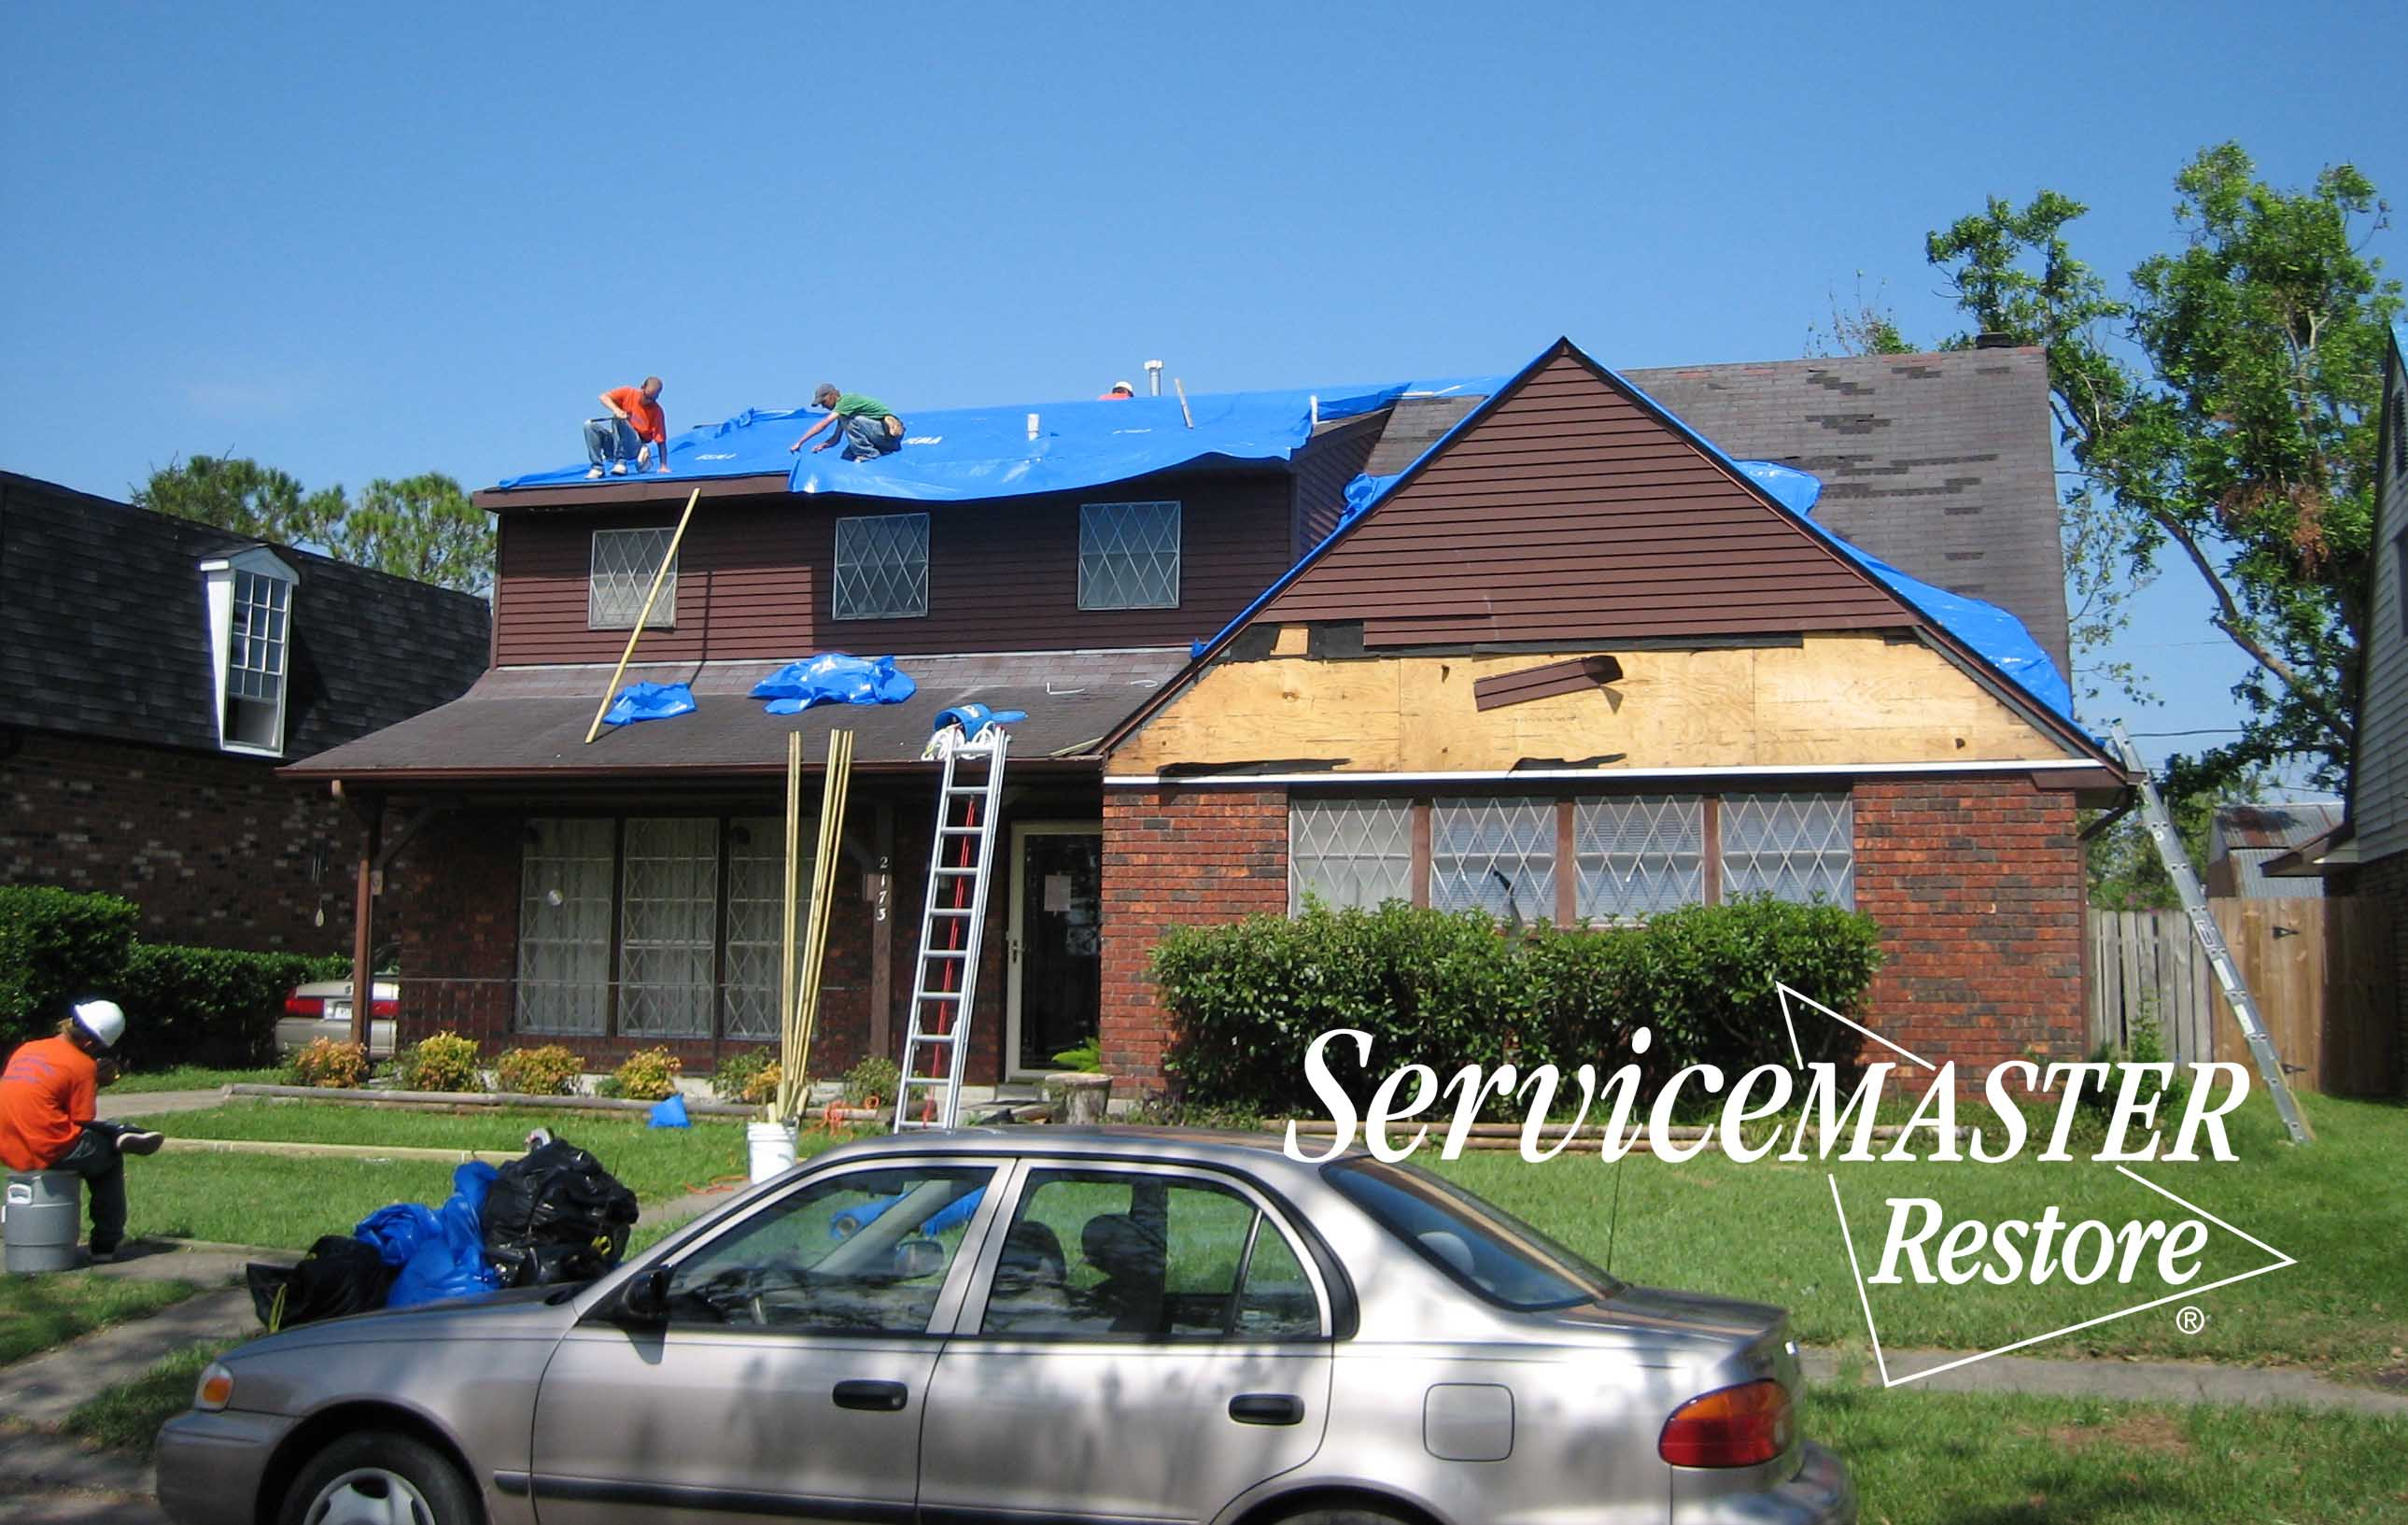 Tornado Damage Cleanup in Tateville, KY